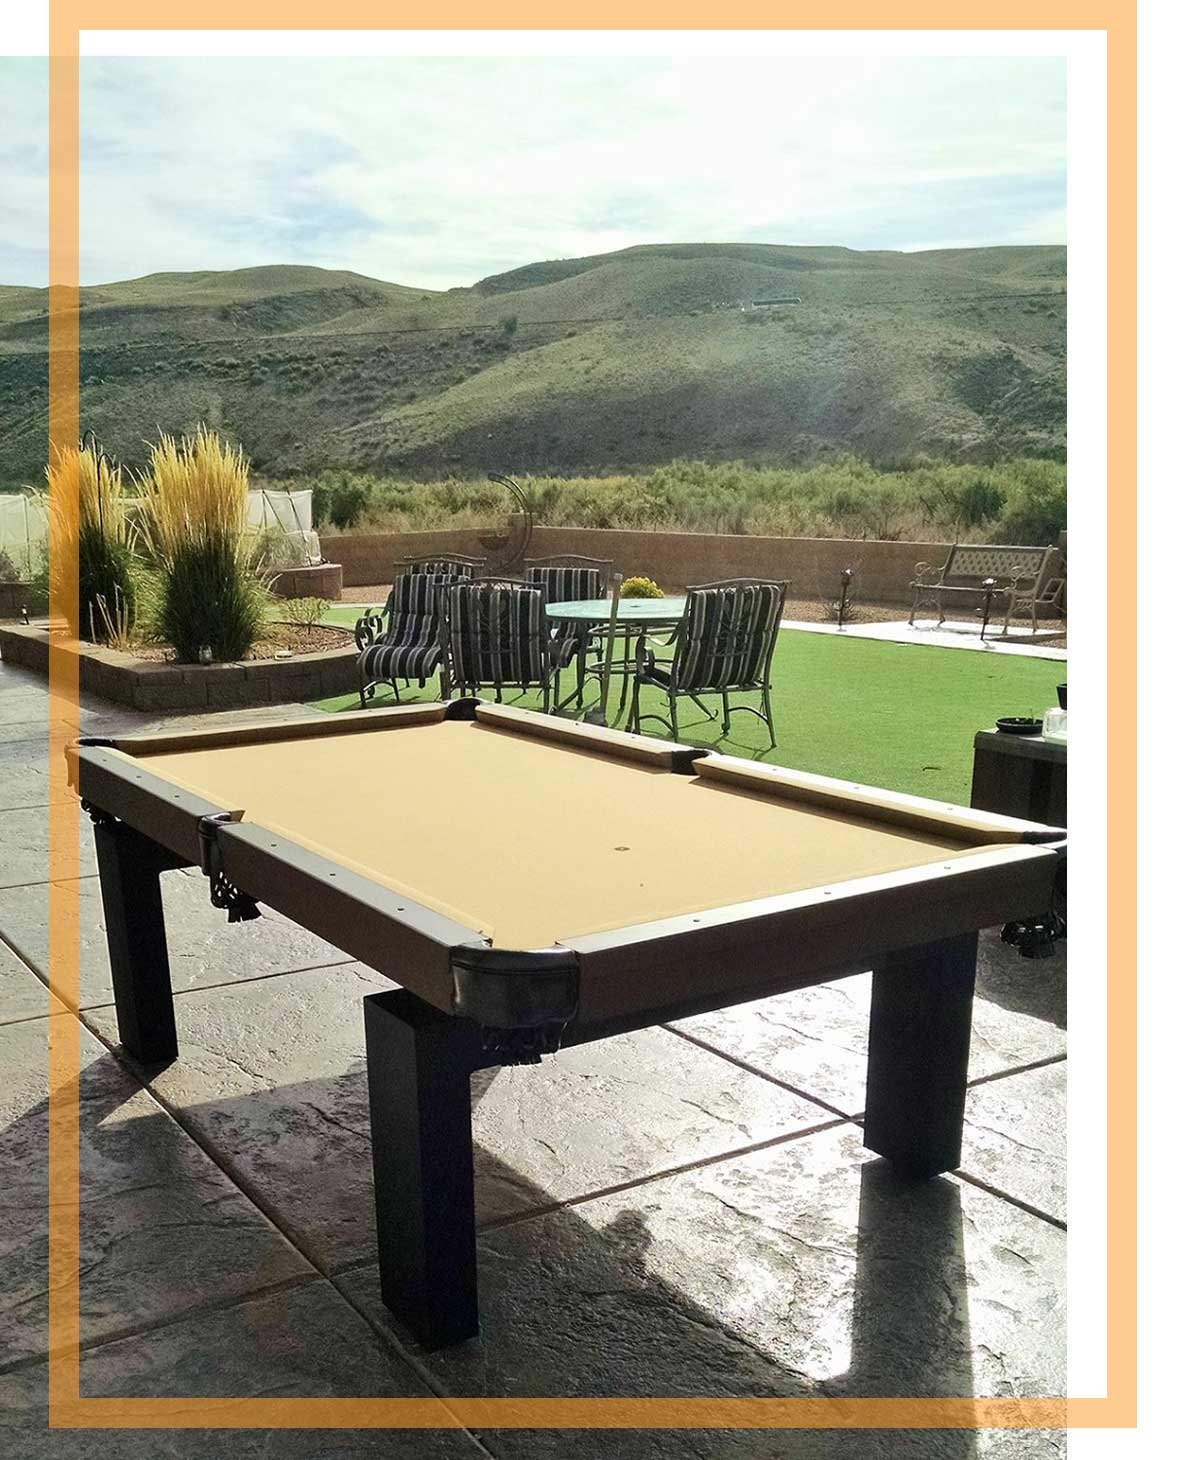 Custom outdoor pool table with Colorado Mountains in distance